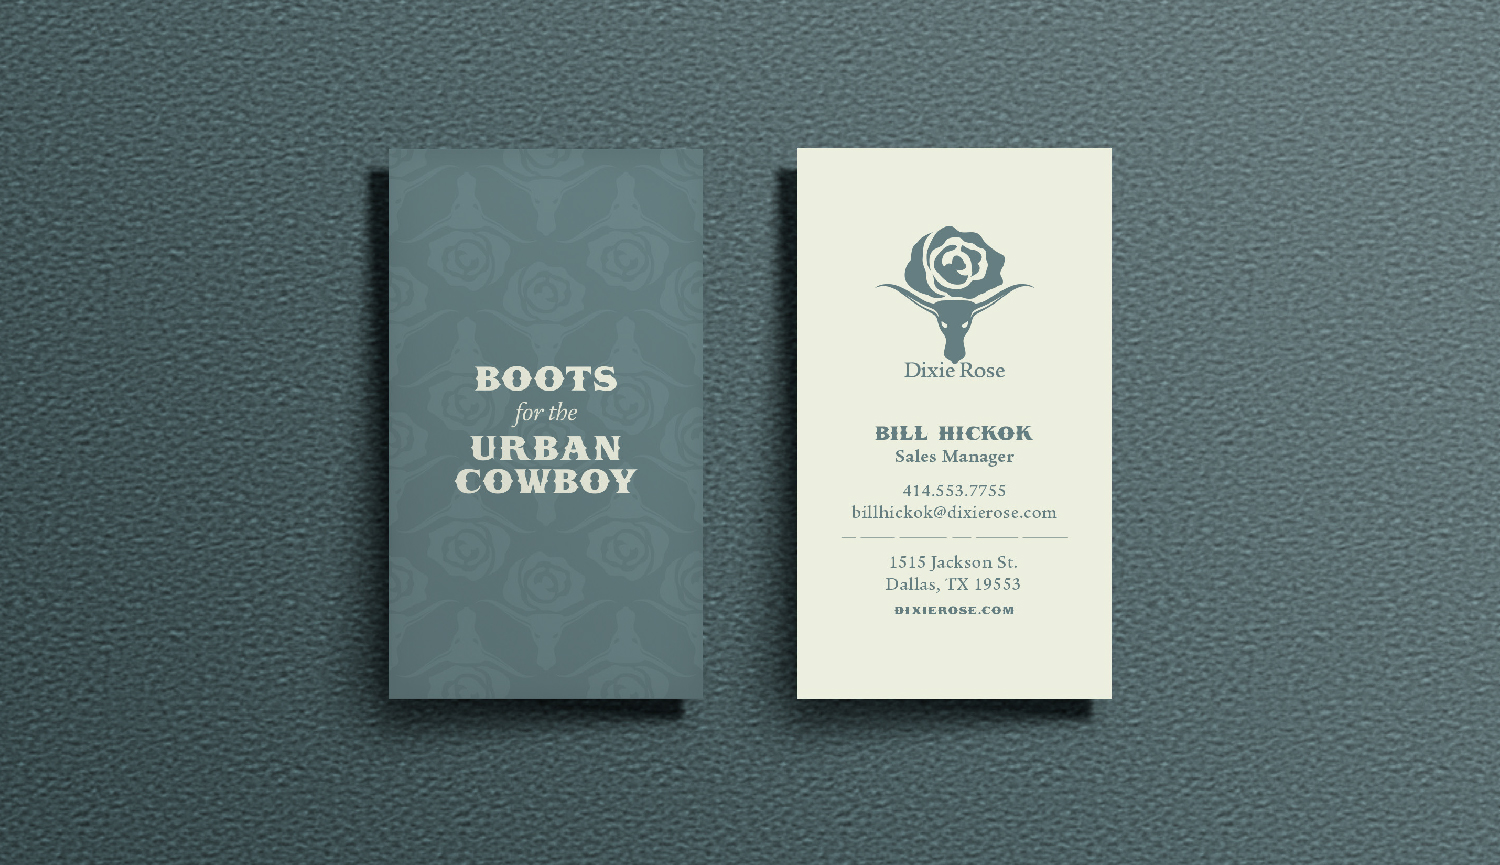 dixie-rose-business-cards.jpg